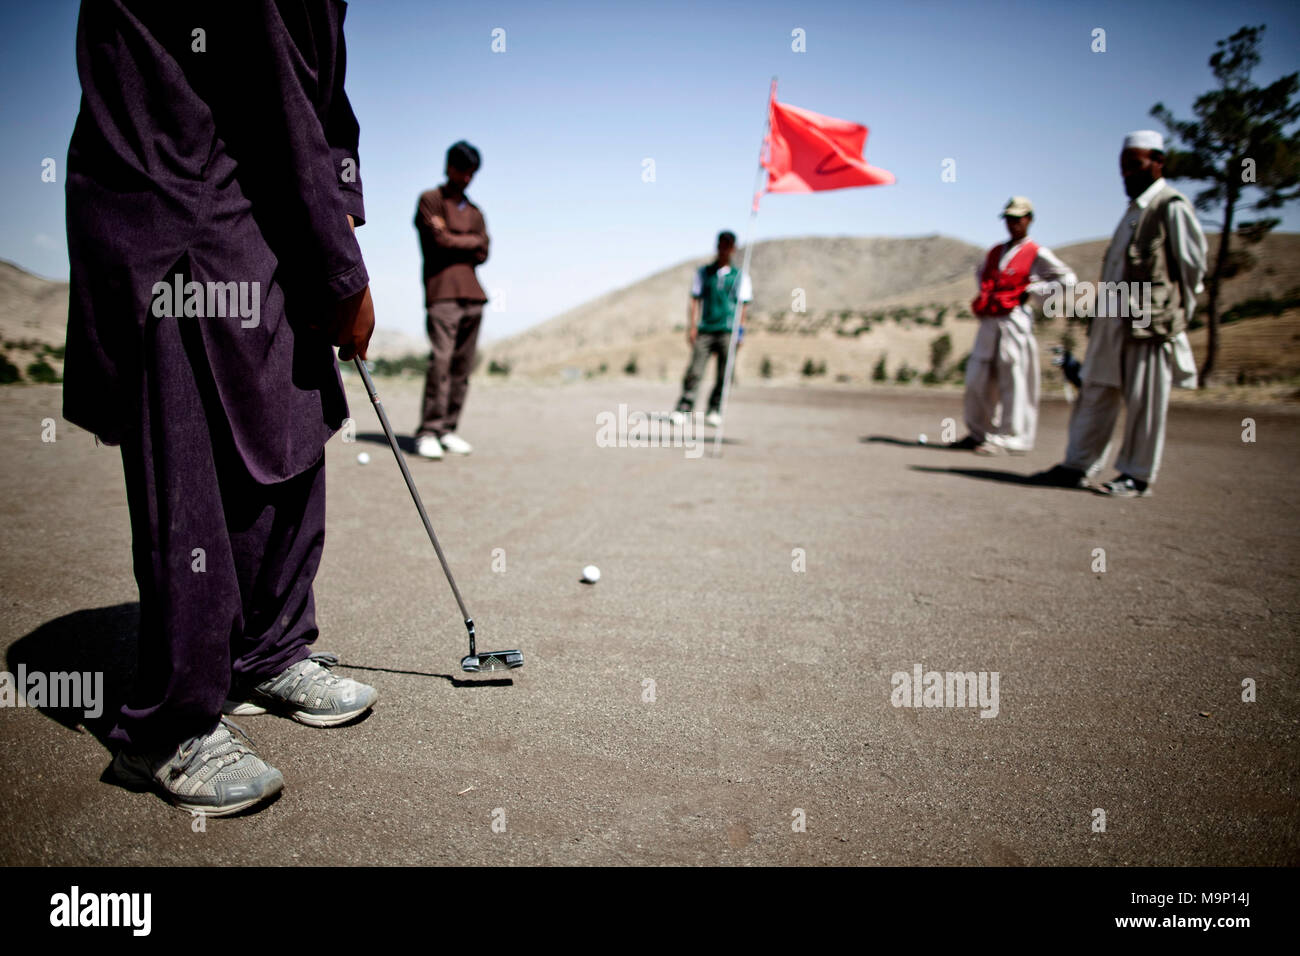 An Afghan golfers putts on the 2nd hole at the Kabul Golf Club in Kabul, Afghanistan, July 17, 2009. This is the only golf course in Kabul and it reopened in 2003. - Stock Image